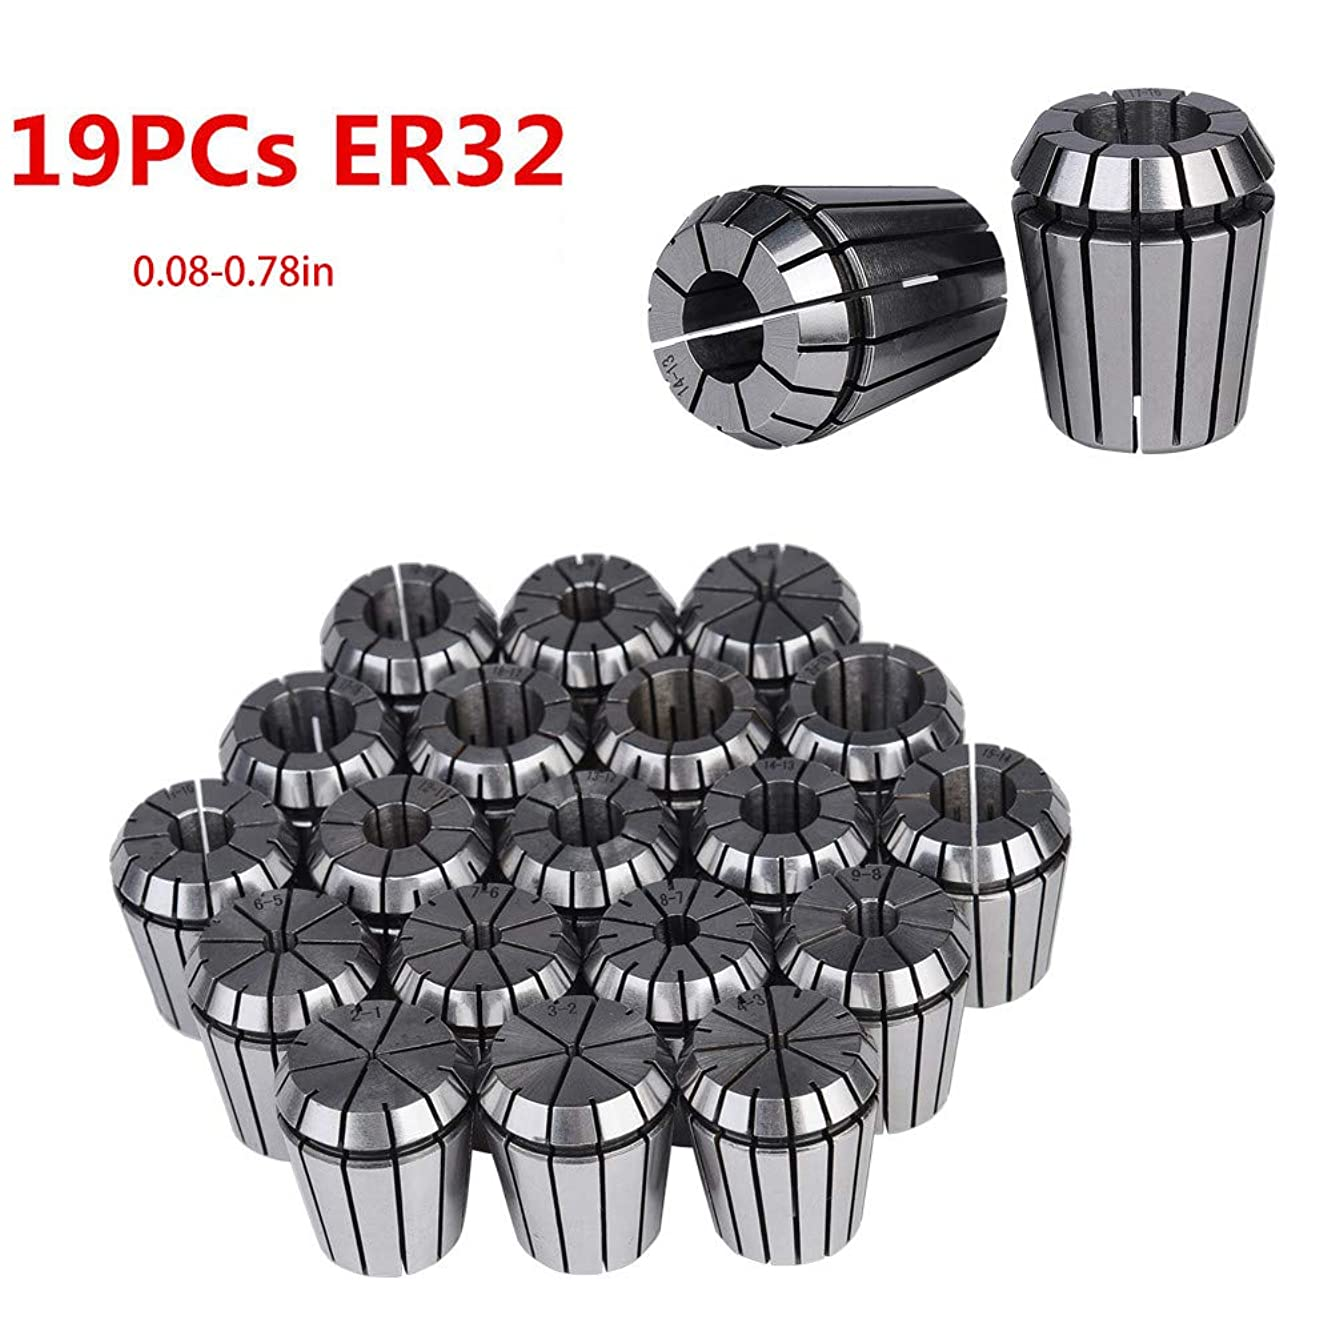 Besde Car Accessories 19 pcs Precision Spring Collet Set, ER32 Collet Chuck Tool Holder Set for CNC Engraving Machine & Milling Lathe Tool Workhold (Sliver)